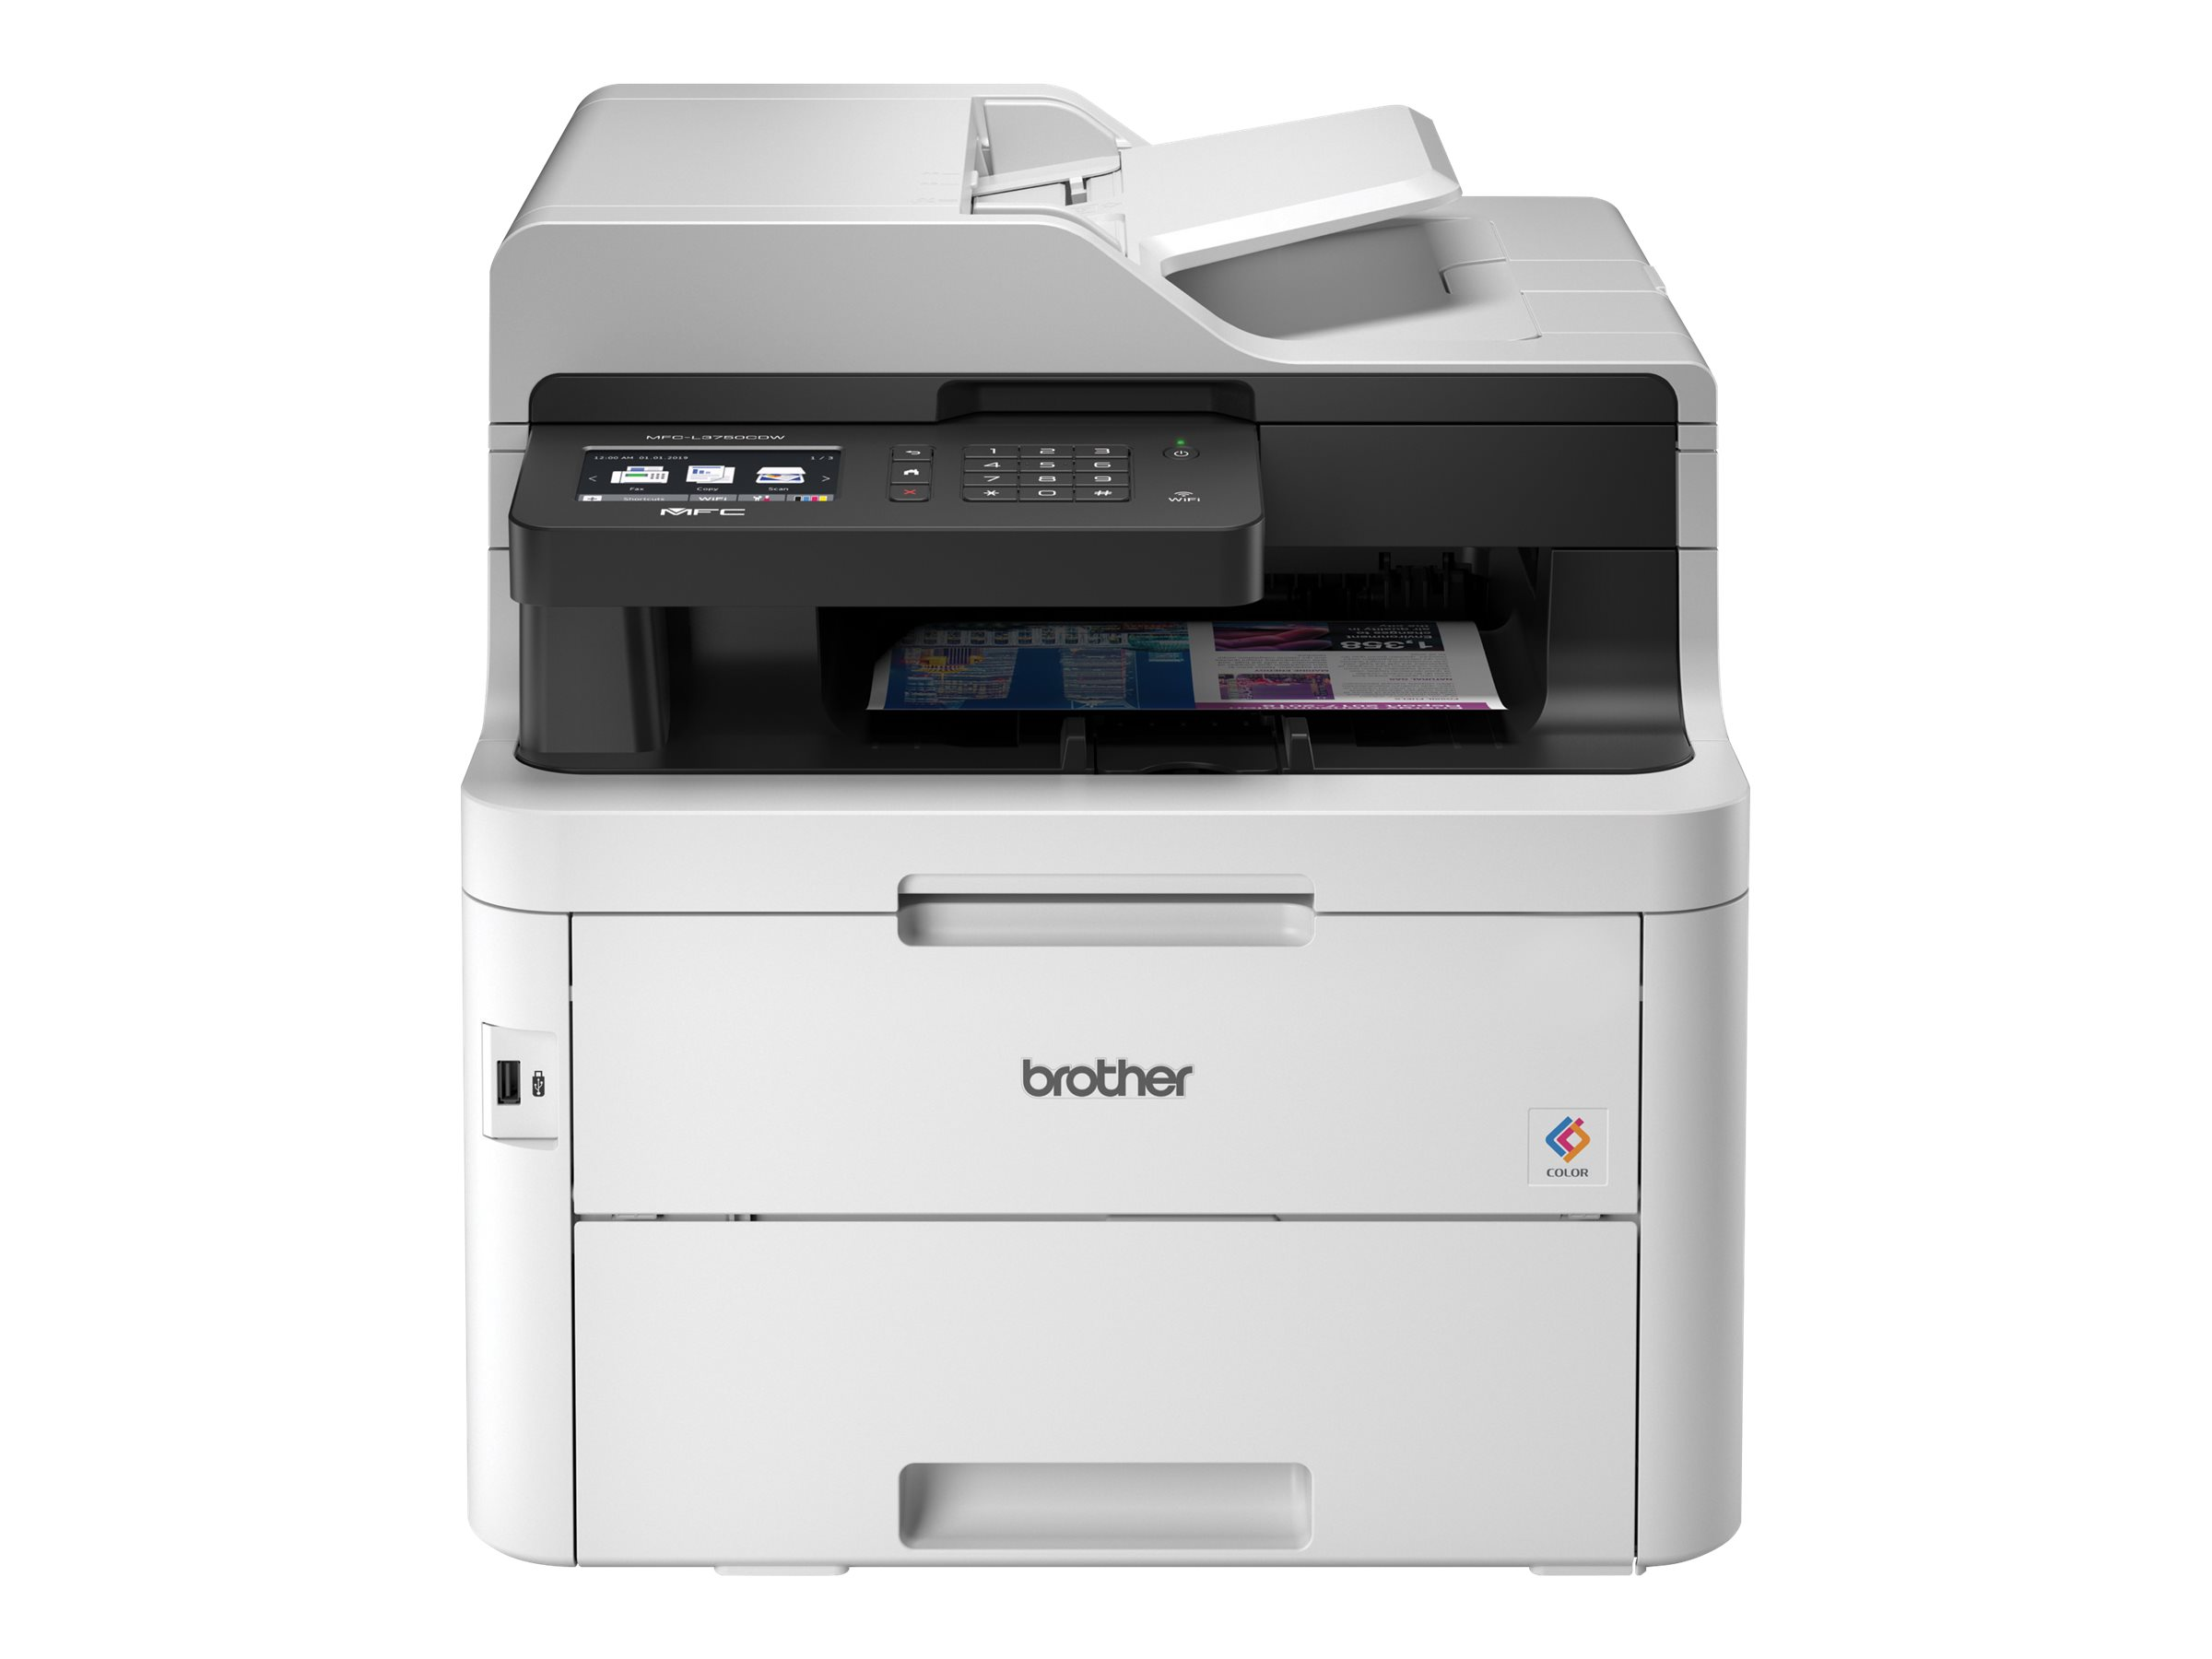 Brother MFC-L3750CDW - imprimante laser multifonction couleur A4 - recto-verso - Wifi